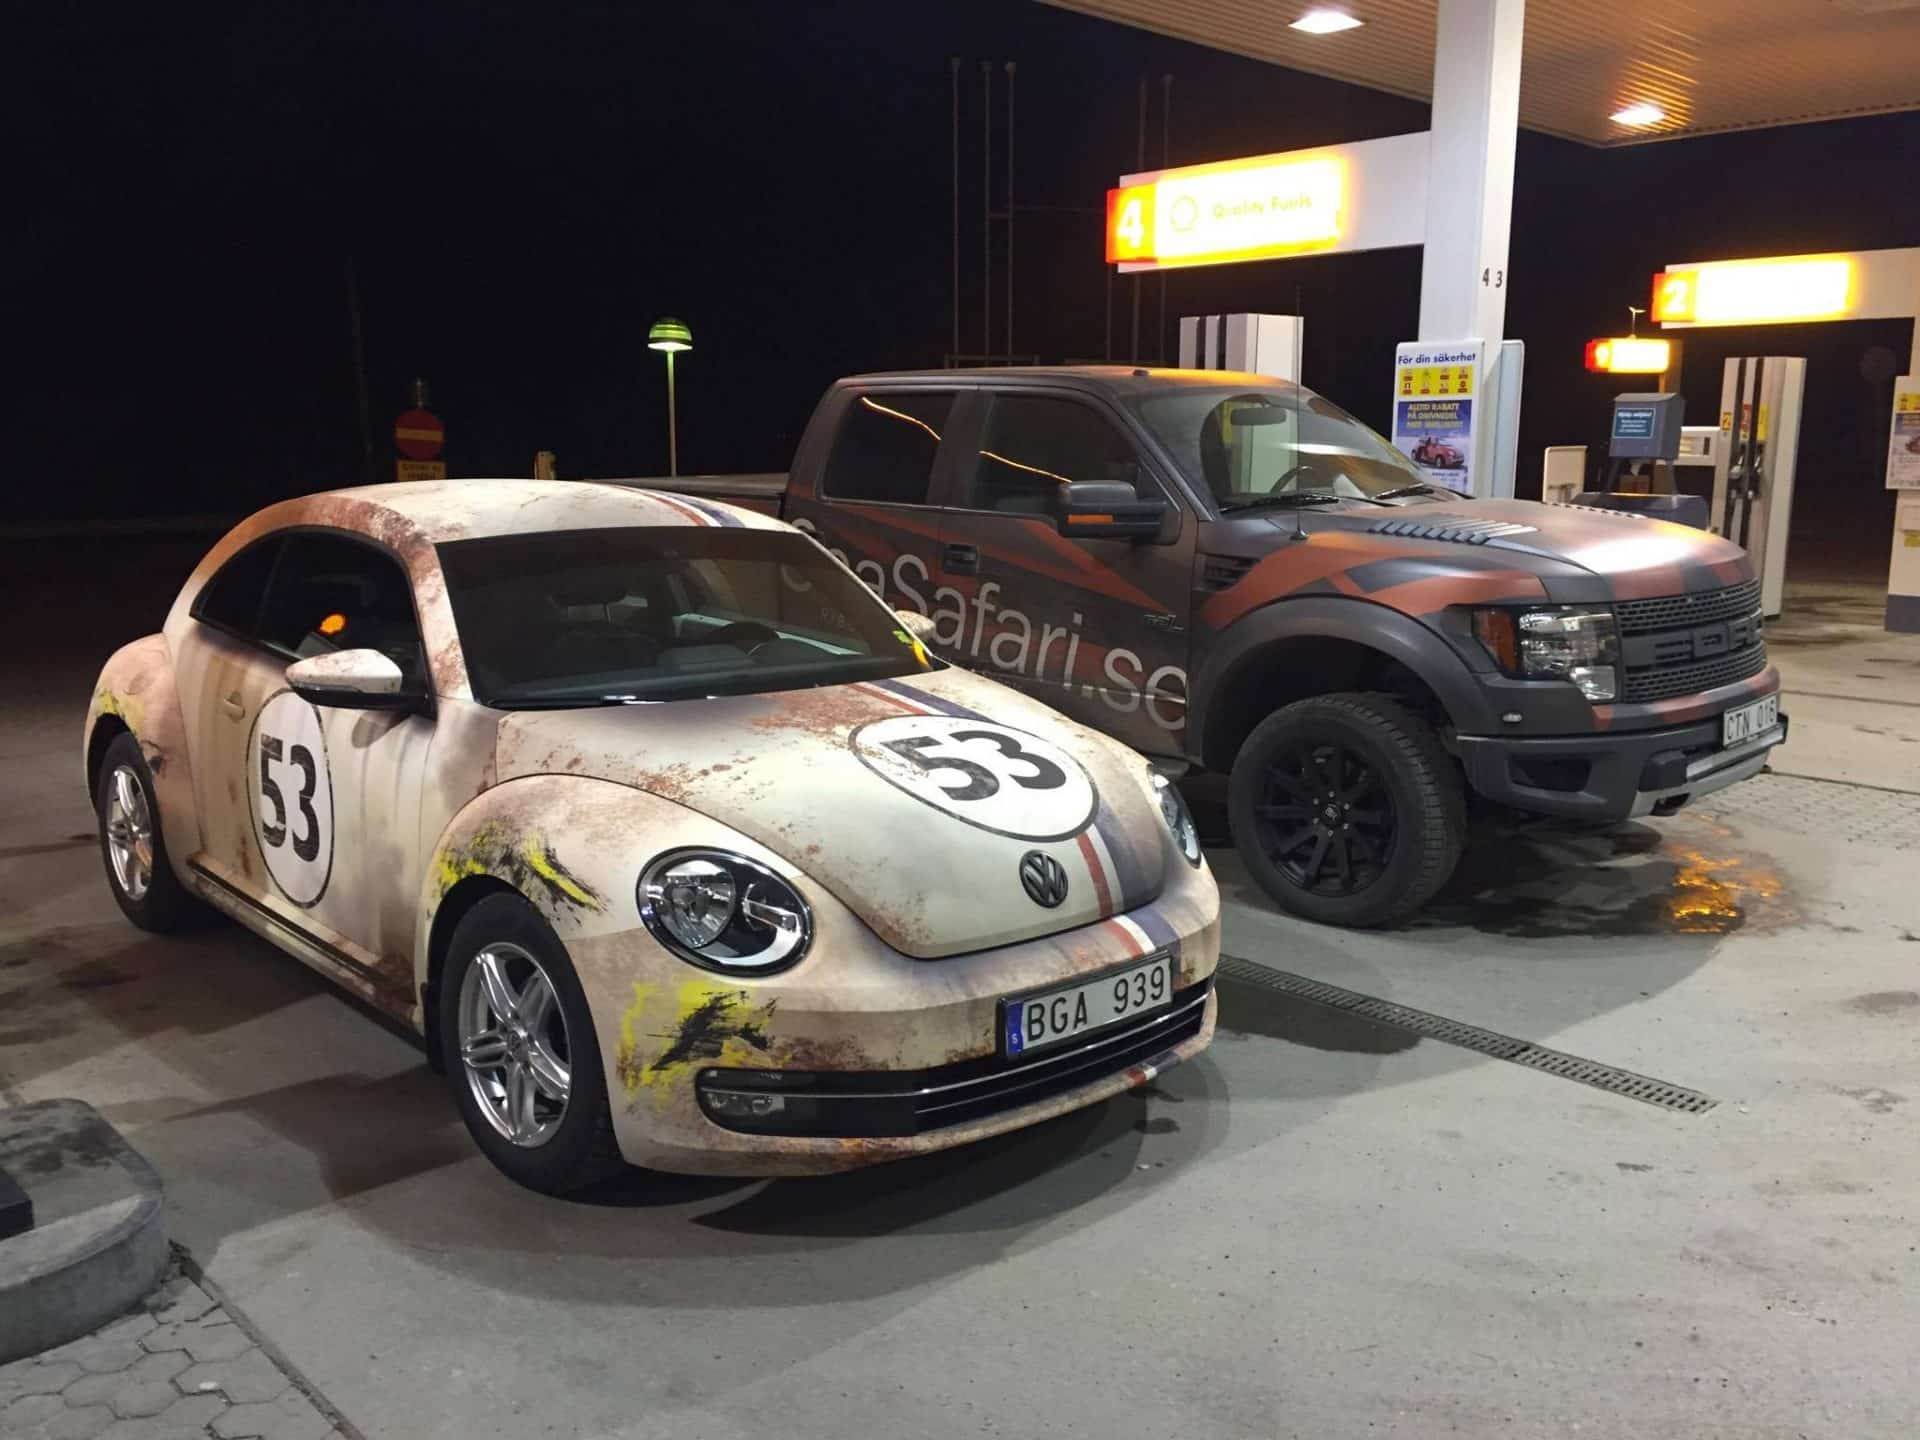 A Beetle Car Apocalyptic Herbie Bee...